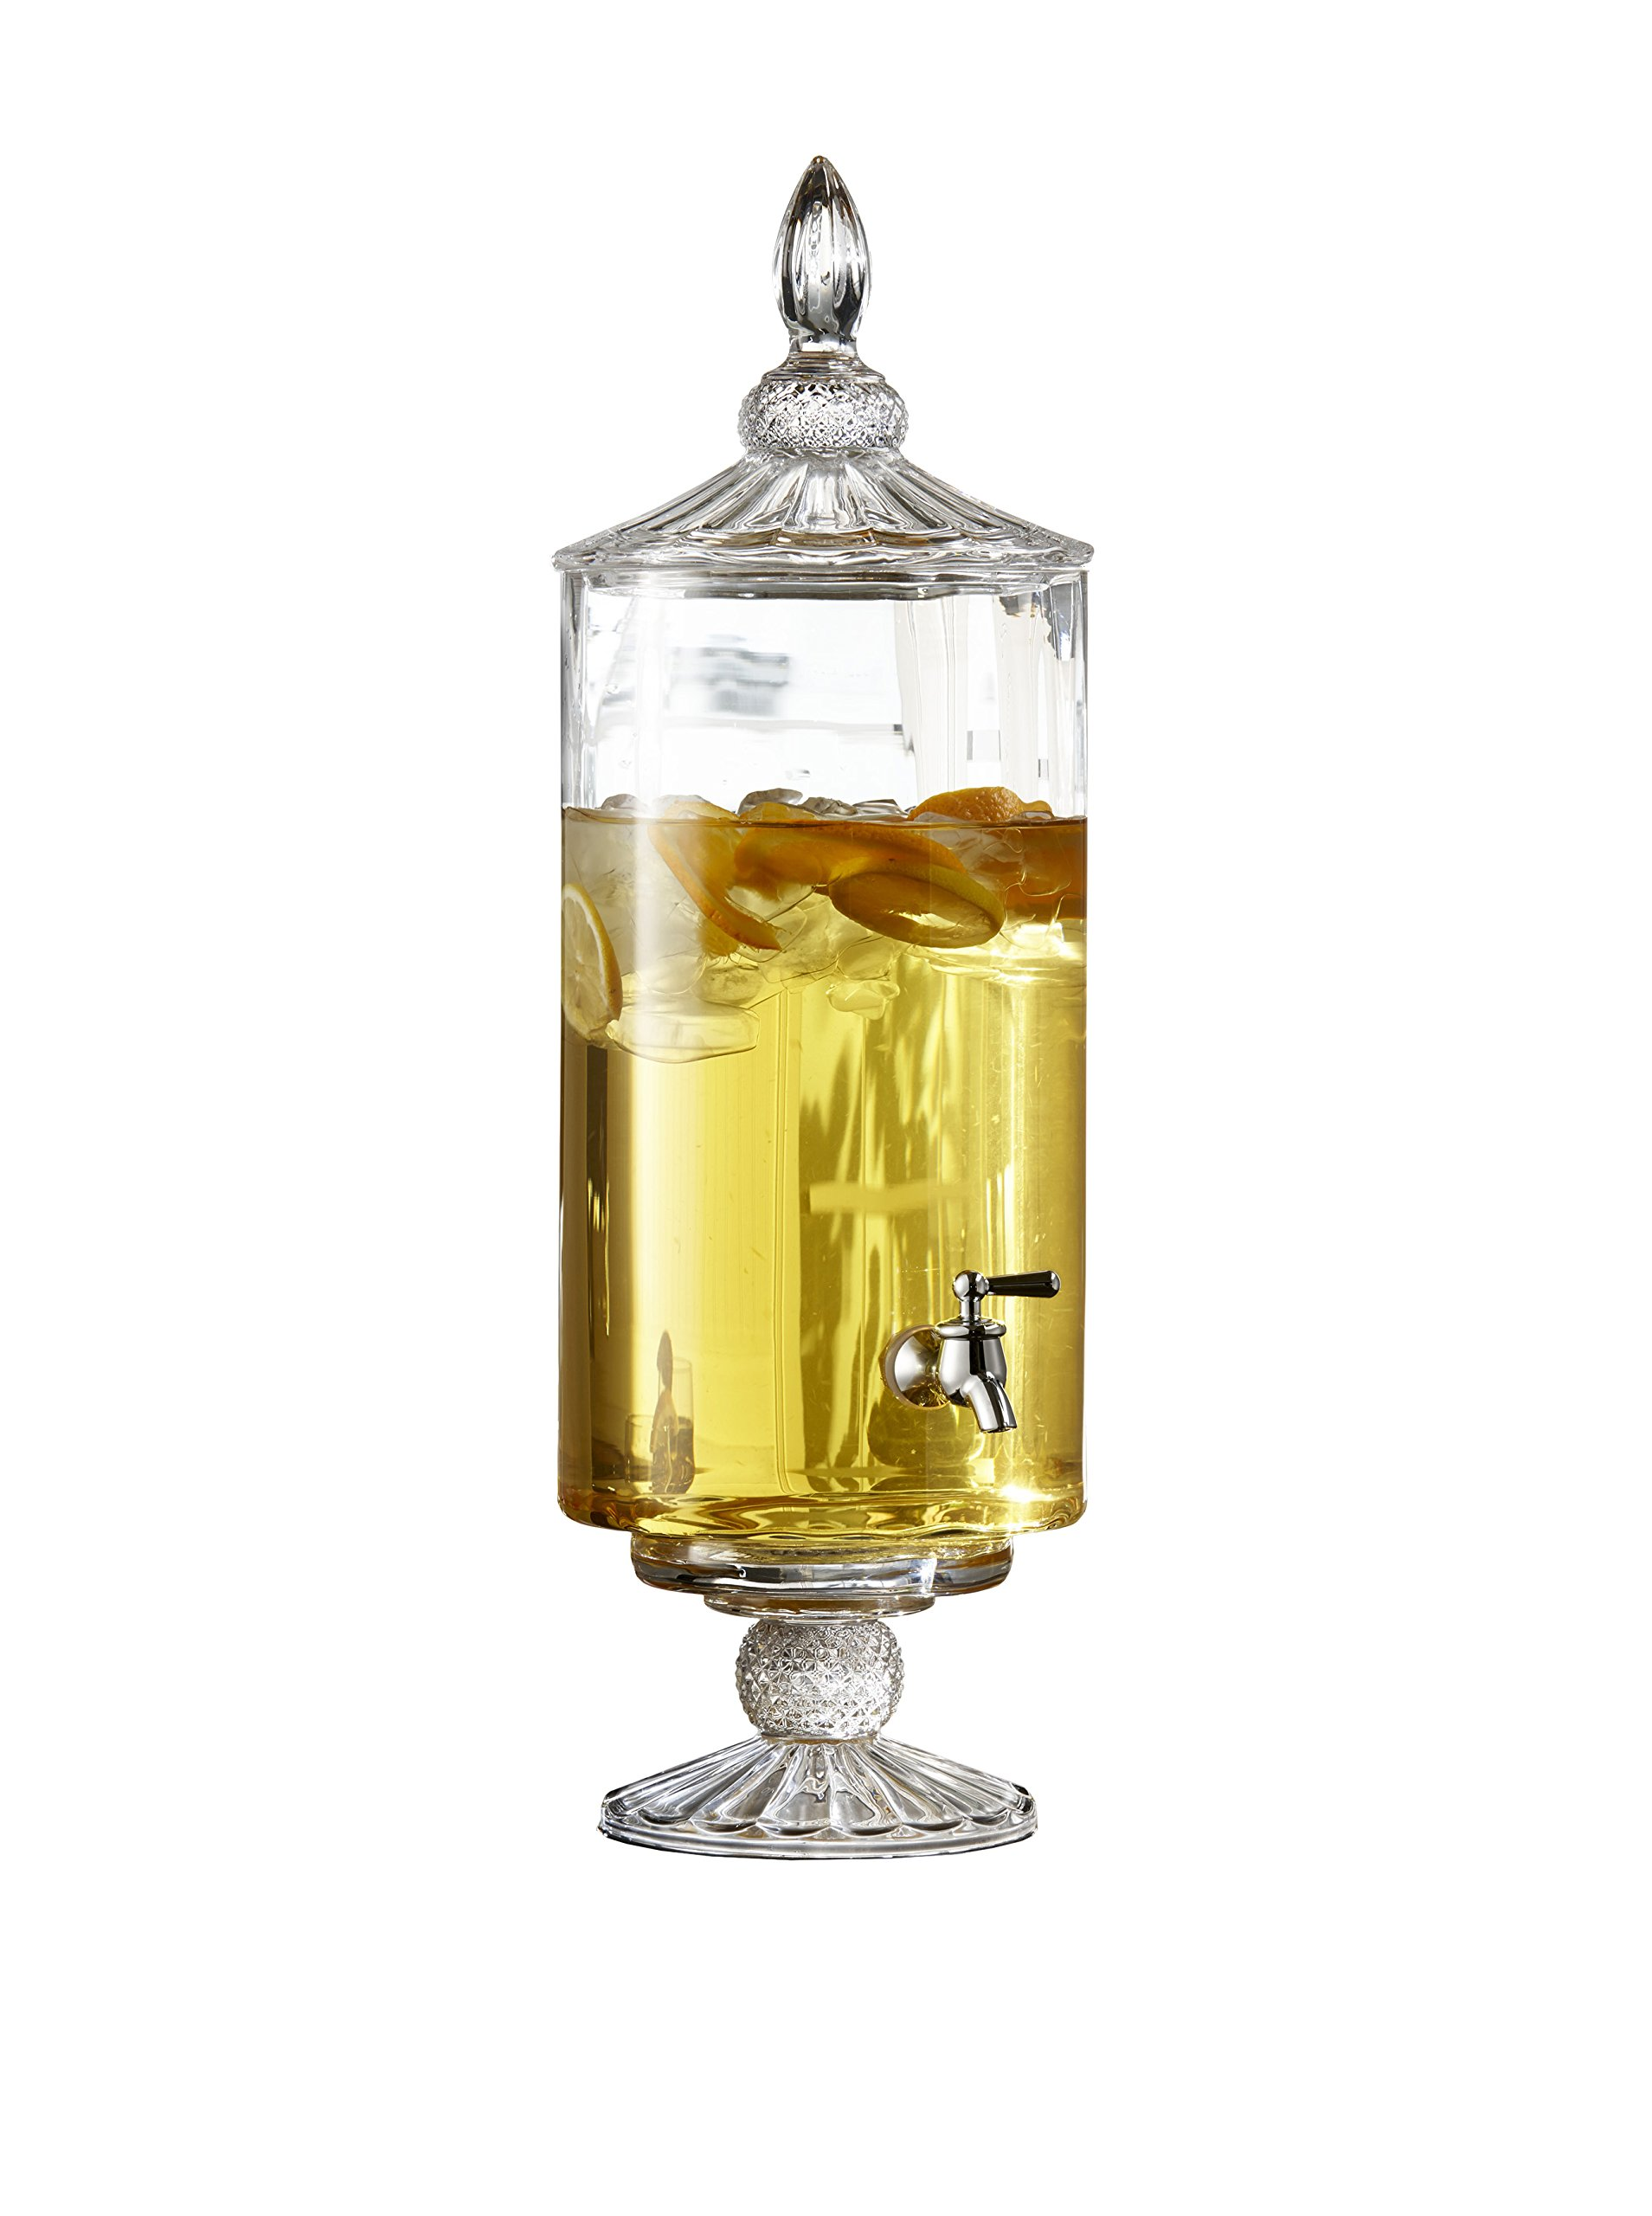 Fifth Avenue Crystal Westchester Optic 210142-GB 2 Gallon Beverage Drink Dispenser with Glass Lid, 9.5 x 19'', Clear